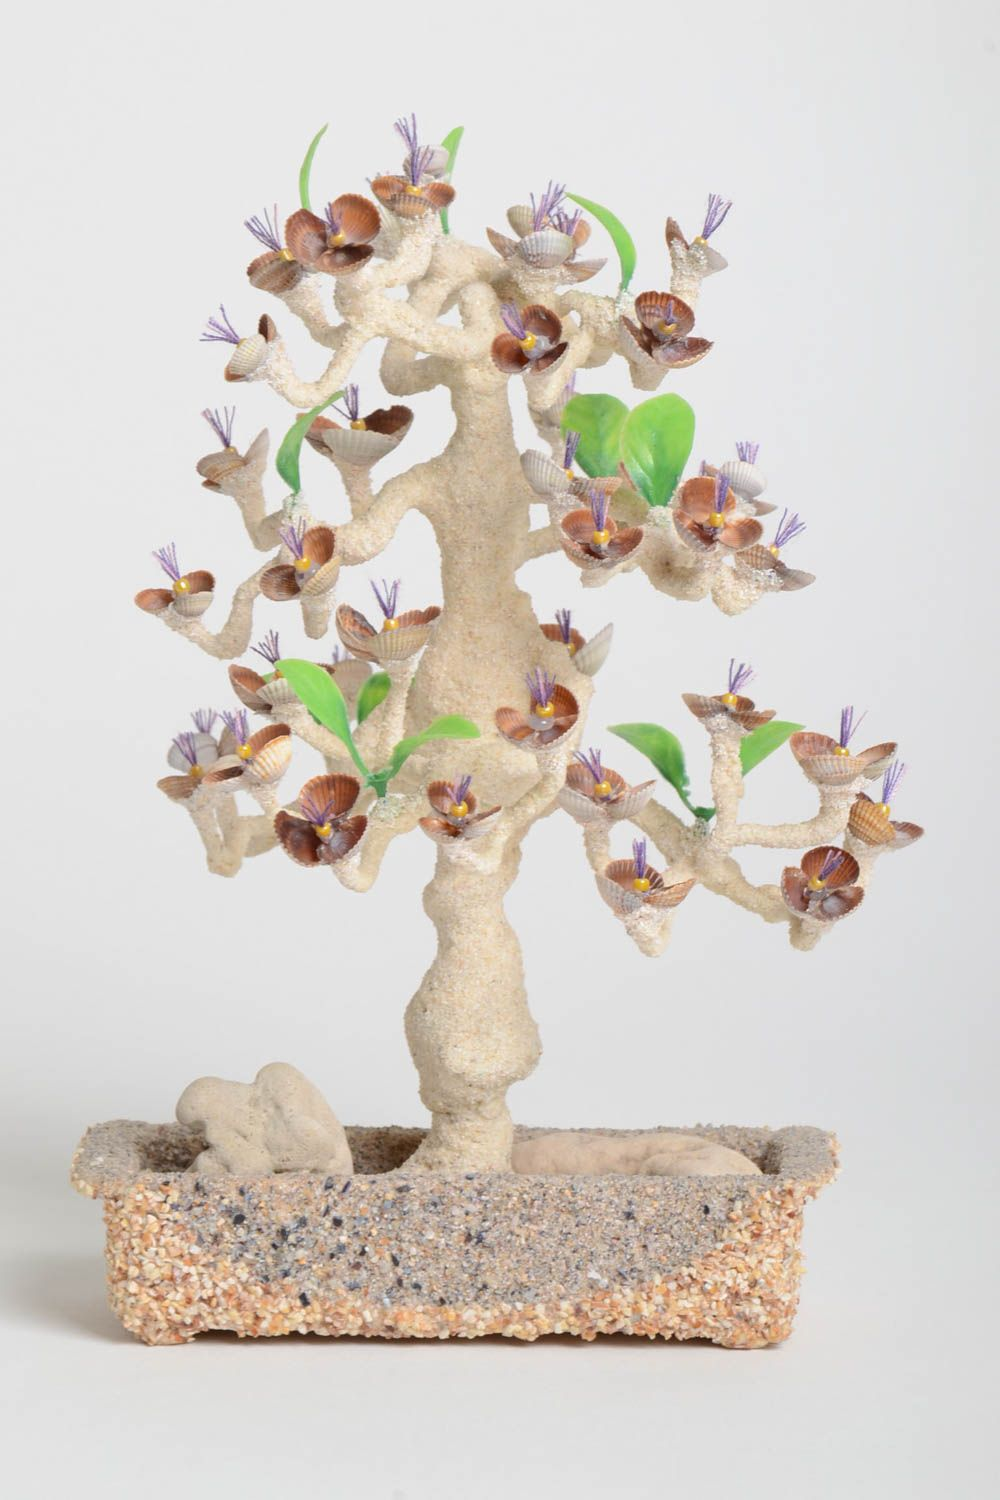 Handmade tree with flowers tree with artificial flowers home decor table decor photo 2